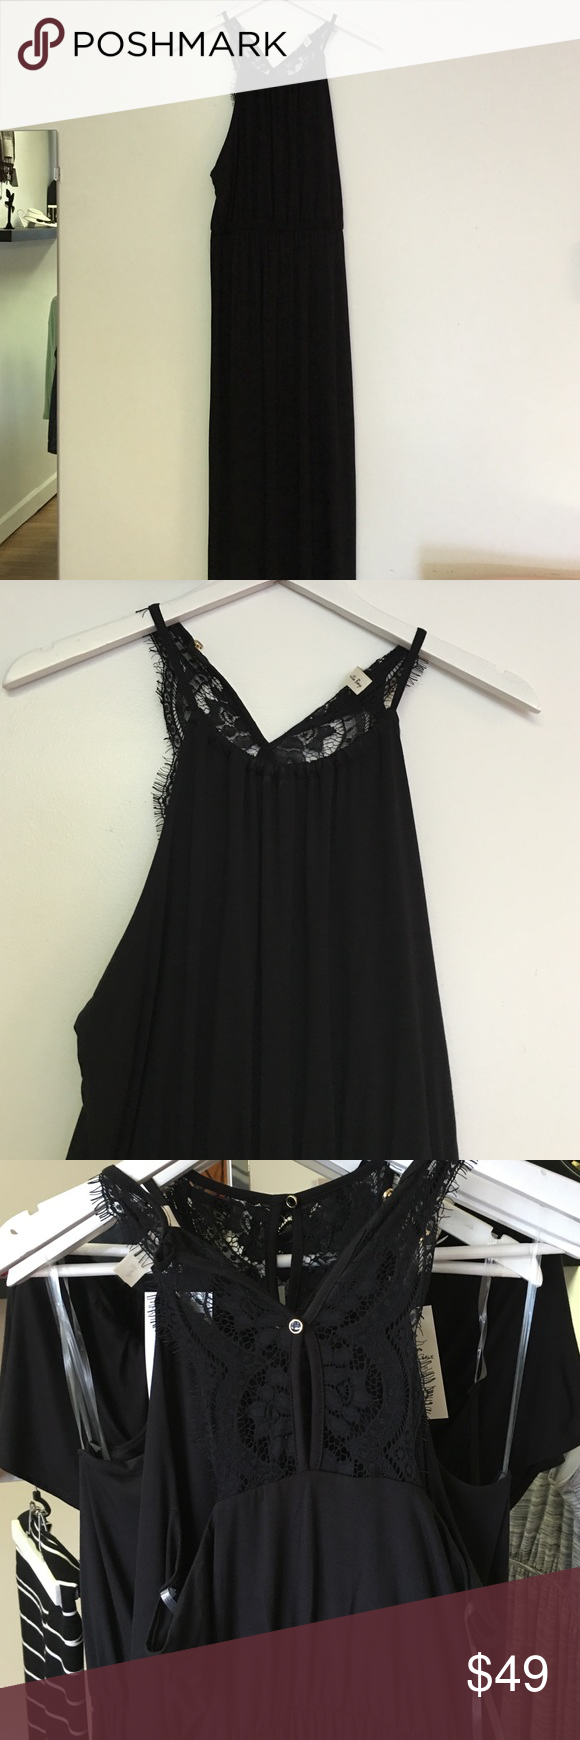 Lace maxi dress Black maxi dress with lace detail in the back Dresses Maxi